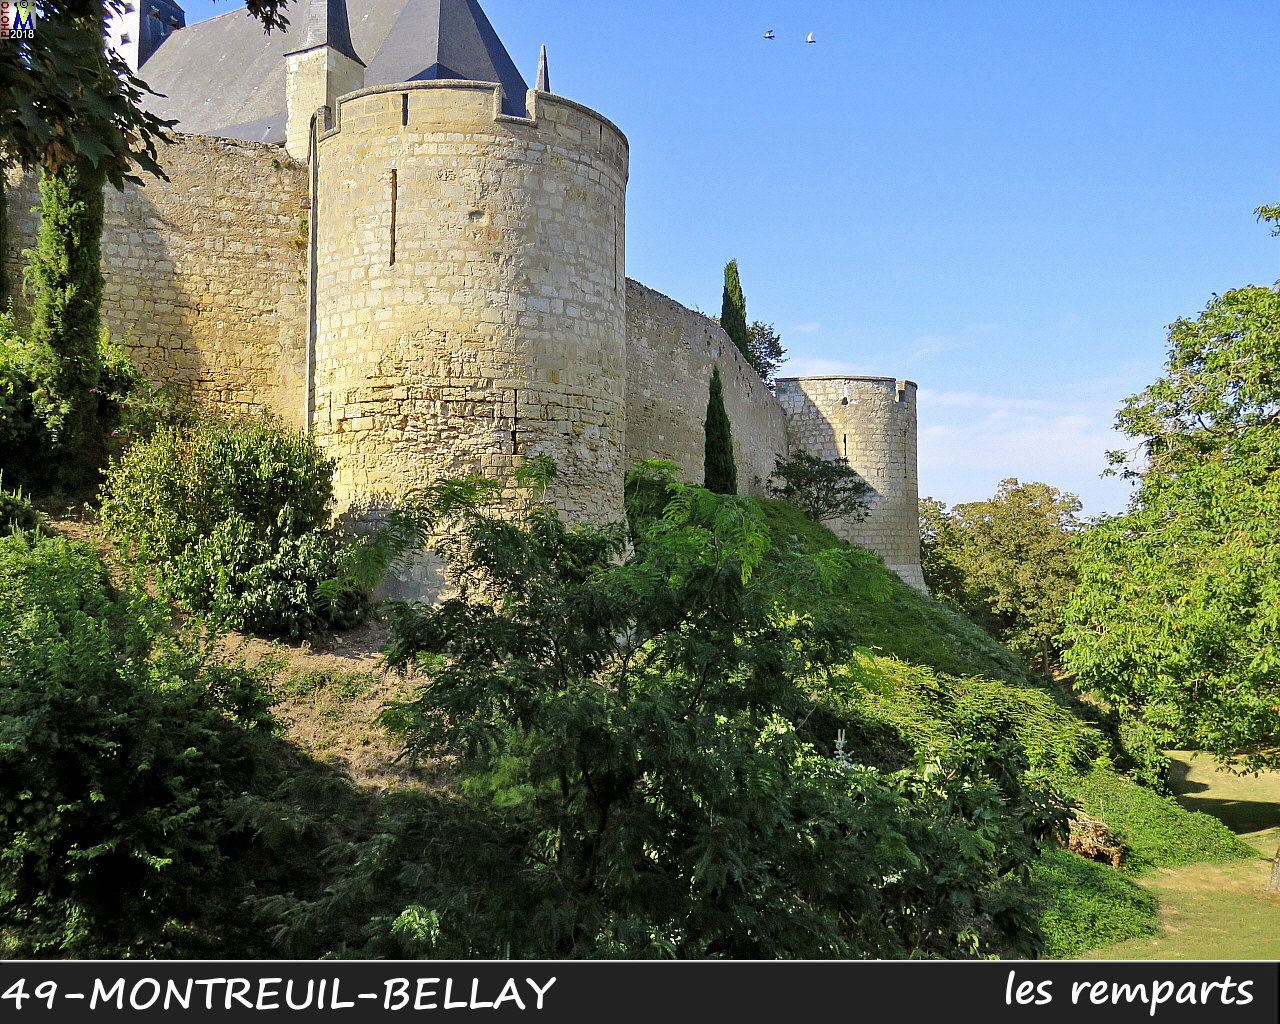 49MONTREUIL-BELLAY_remparts_1022.jpg